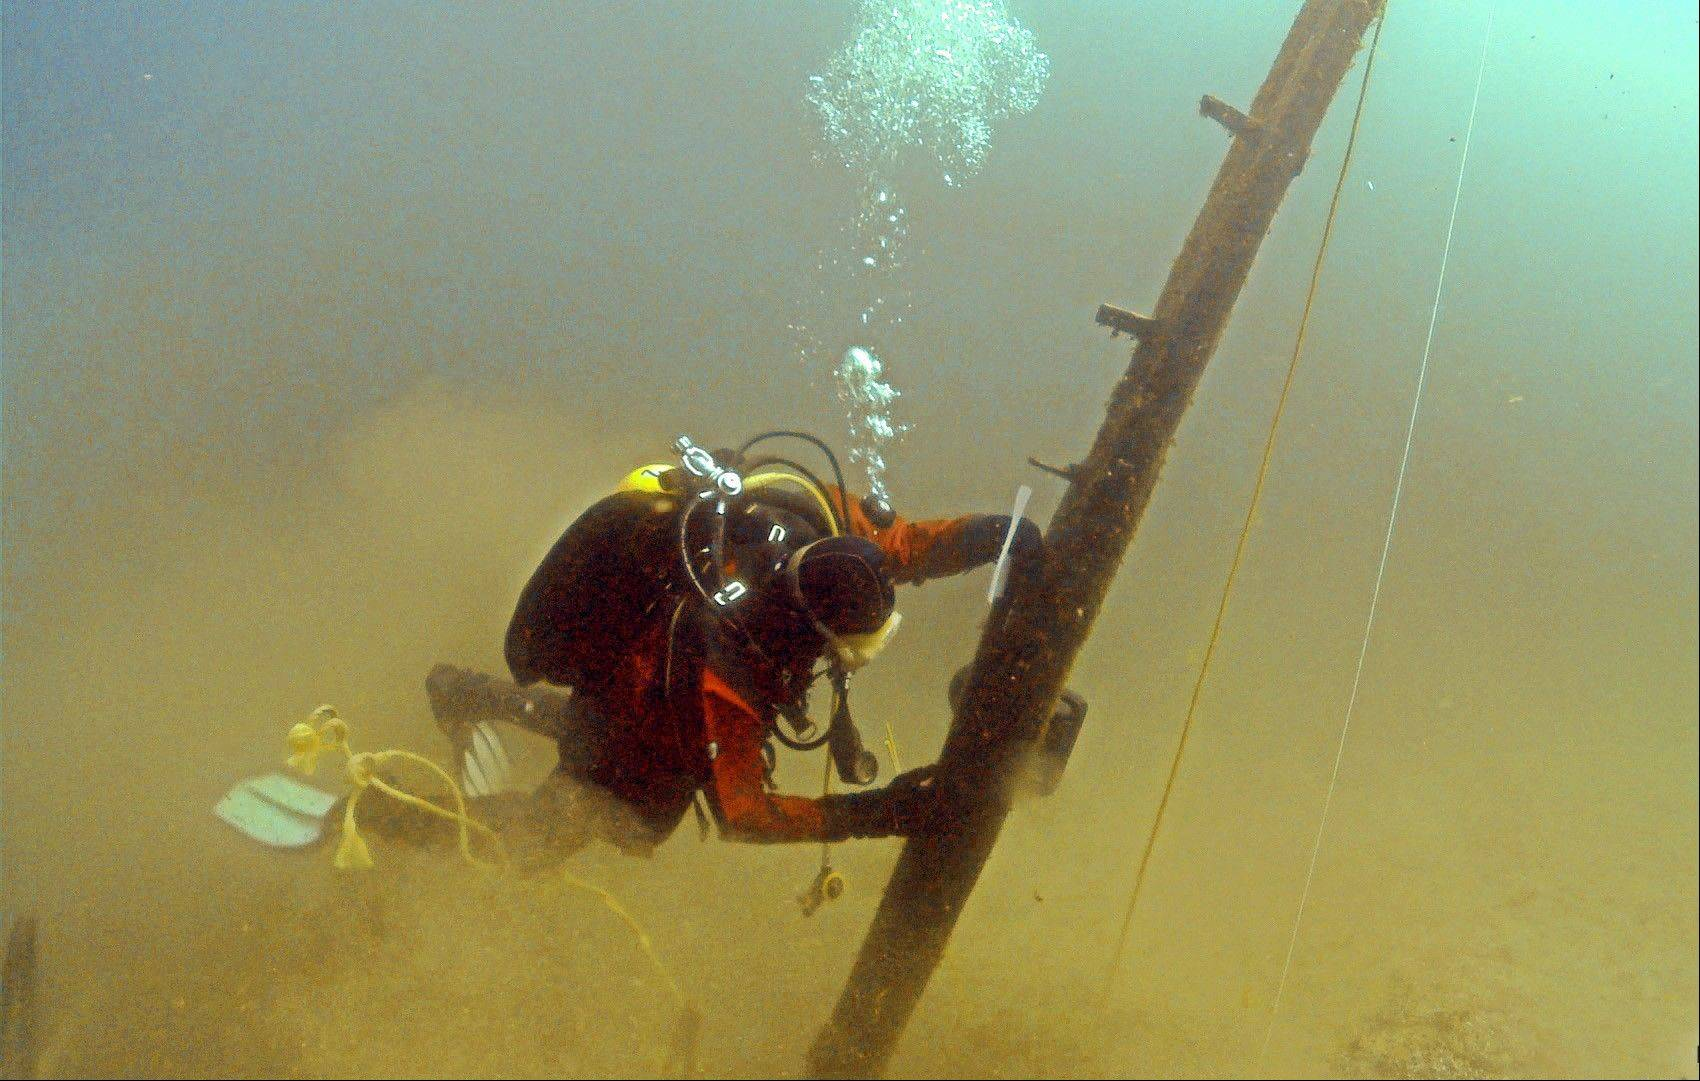 Diver Jim Nowka of Great Lakes Exploration Group inspects a wooden beam extending from the floor of Lake Michigan that experts believe may be part of the Griffin, a ship that sank in 1679. Crews are digging a pit at the base of the beam to see if it's attached to a buried ship.